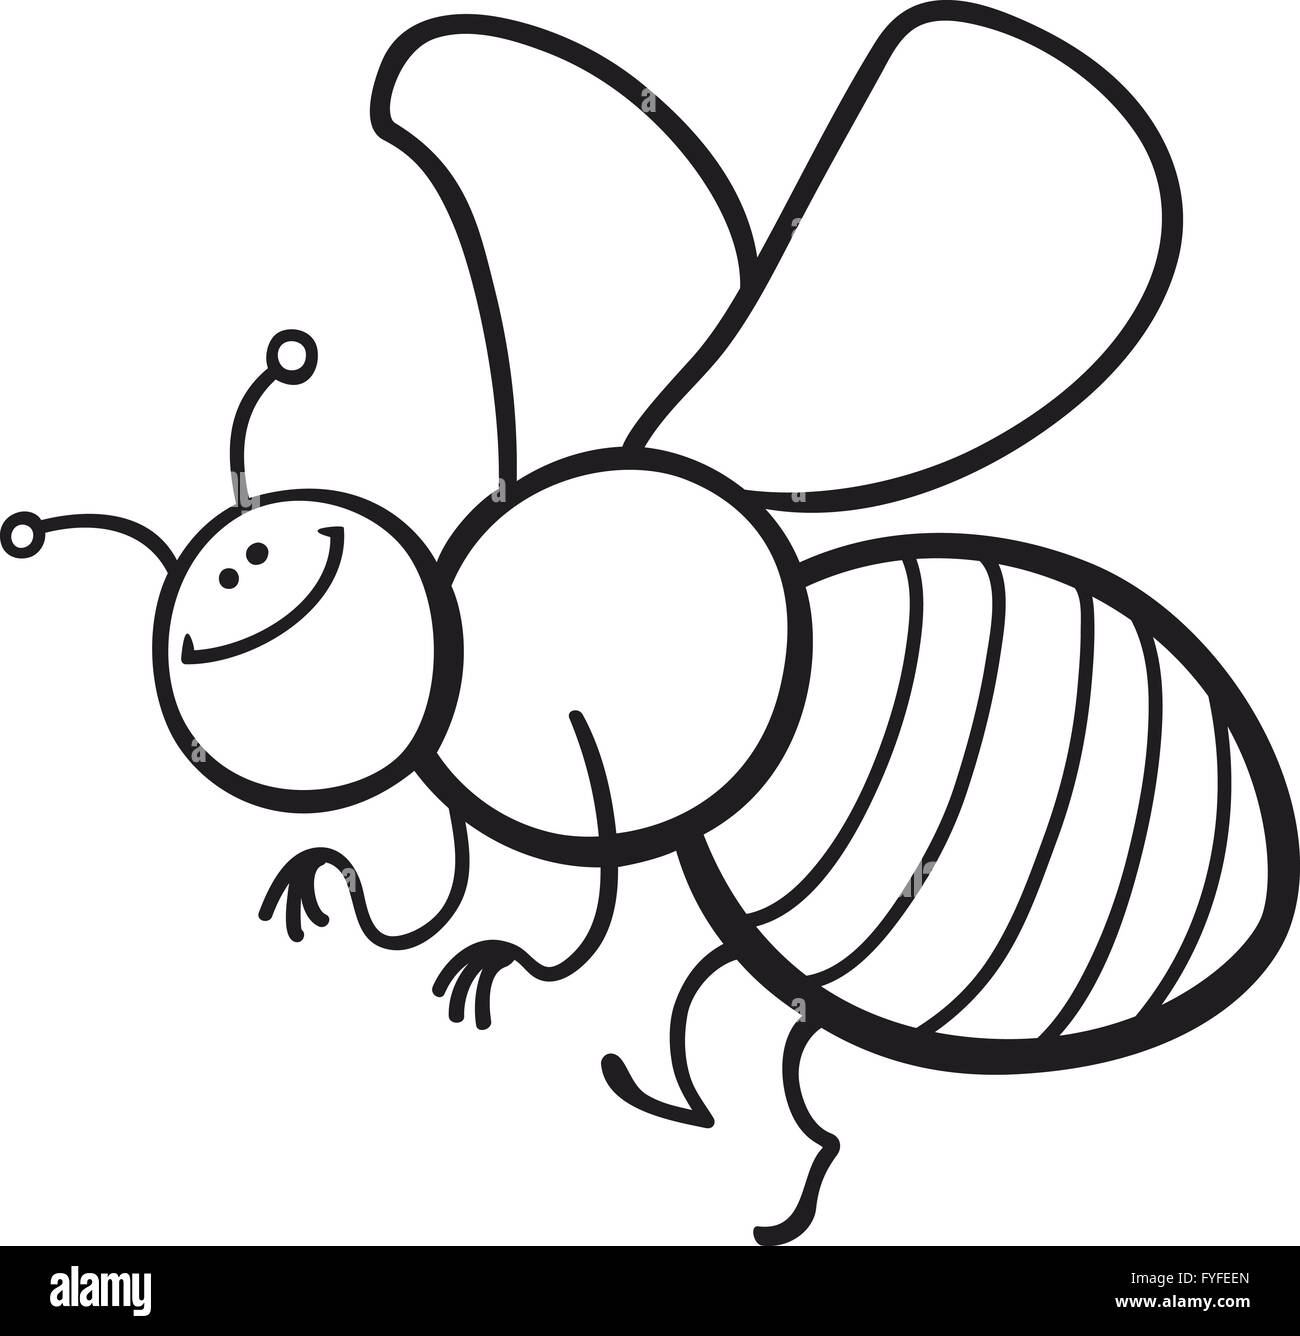 Cartoon Bee Coloring Page Stock Photo Alamy